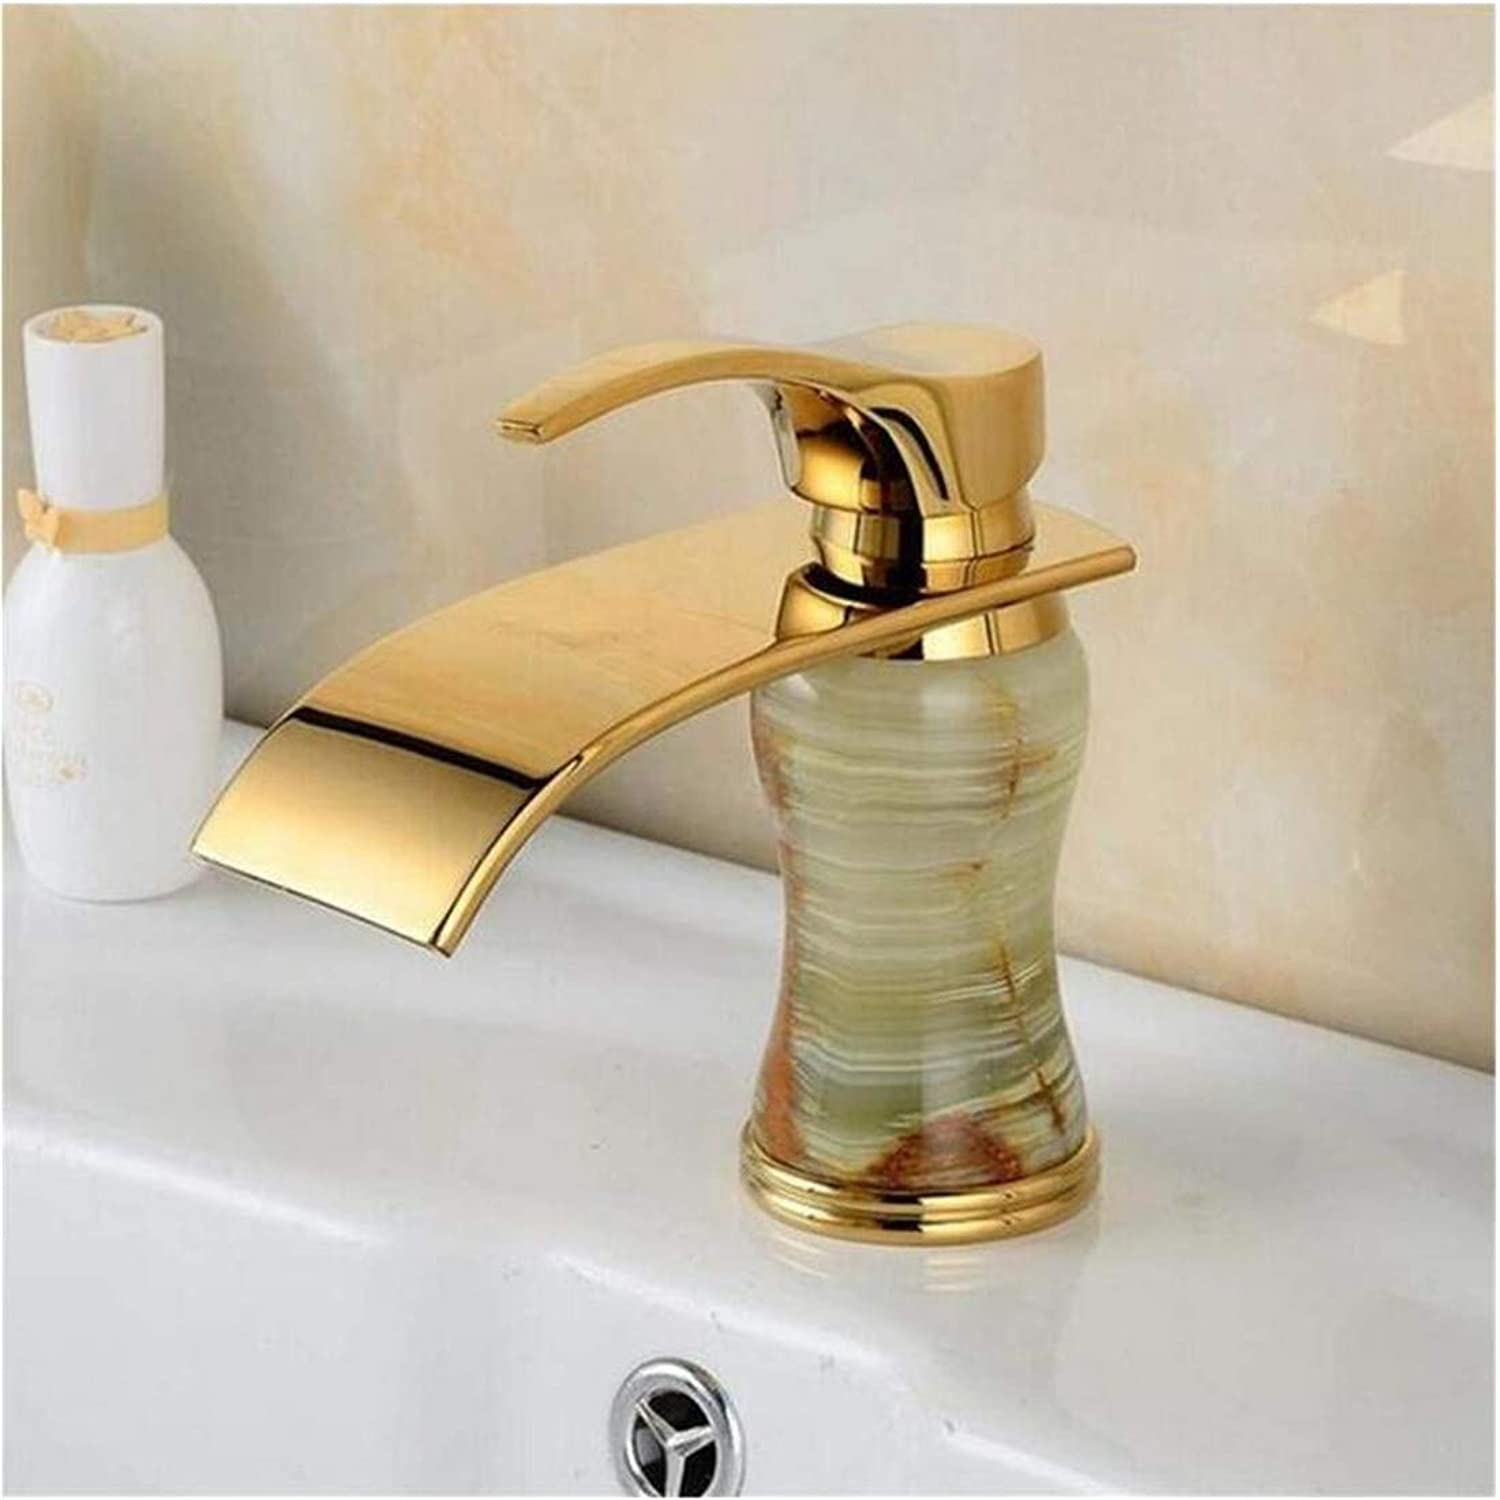 Stainless Steel Vintage Brass Basin Faucets Mixer Vintage, Brass Retro Toilet Basin Faucet gold,Bathroom